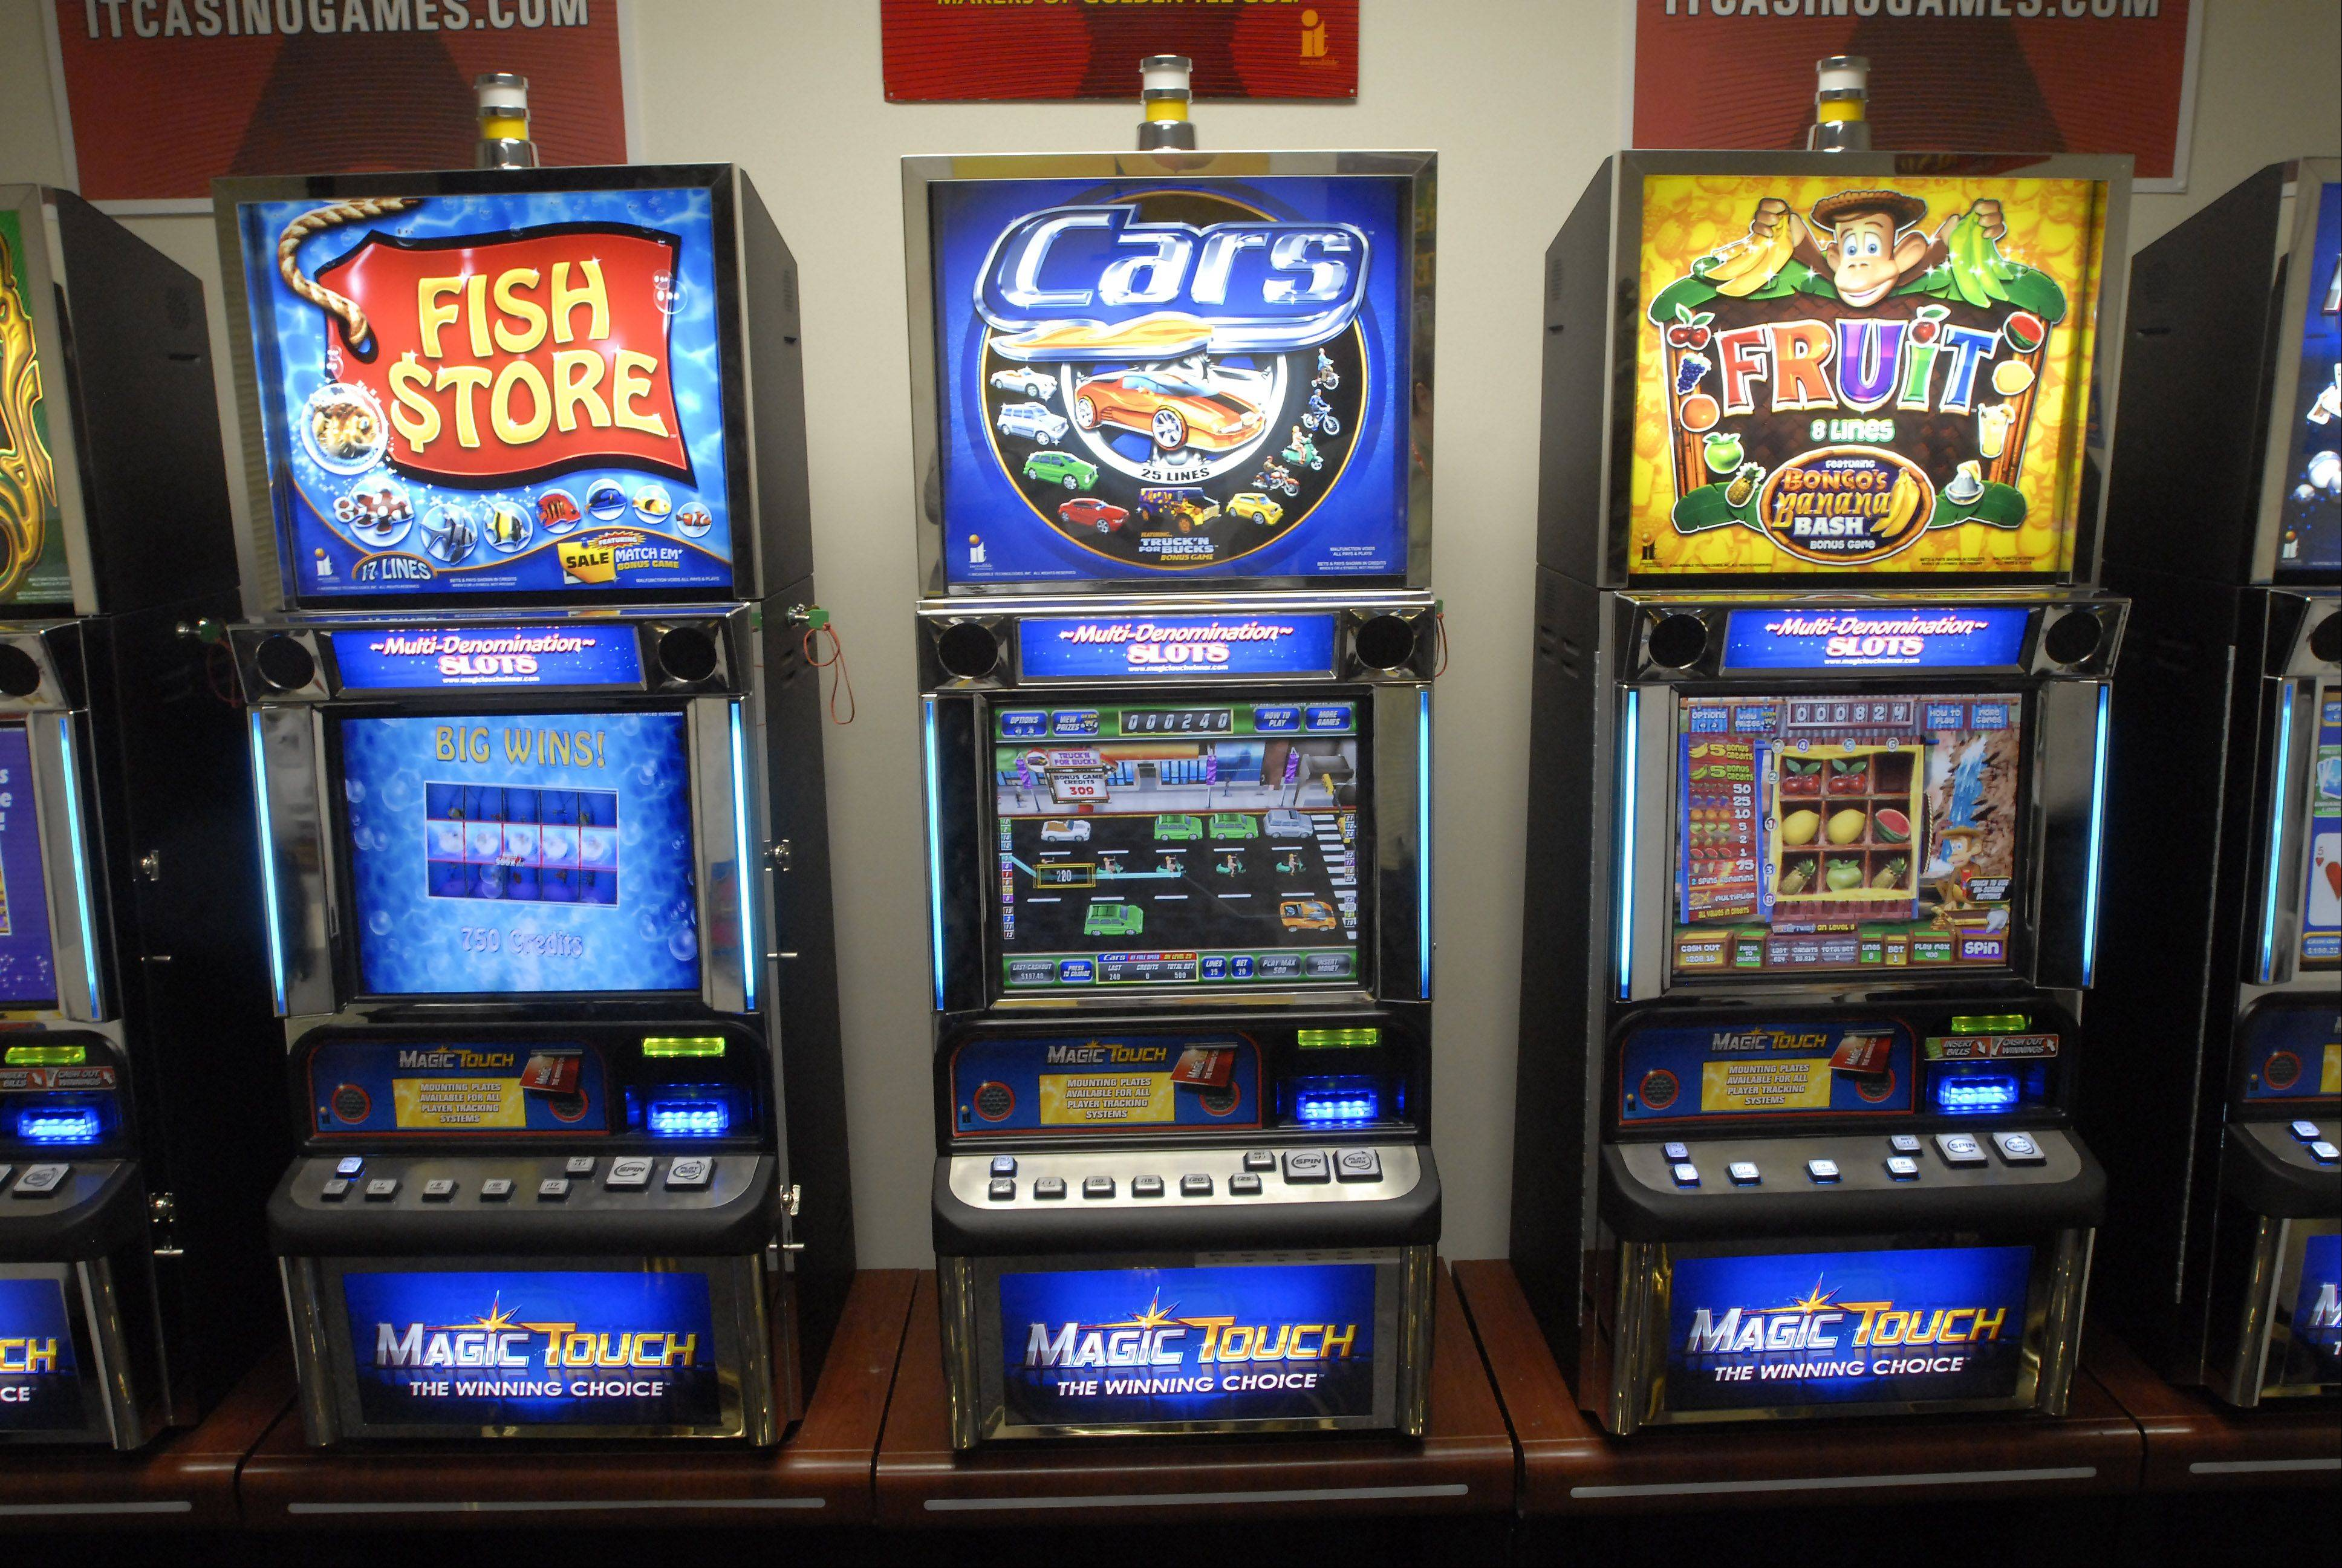 BILL ZARS/bzars@dailyherald.com There is debate in Bartlett about the big number of video gambling businesses that want to come to town.